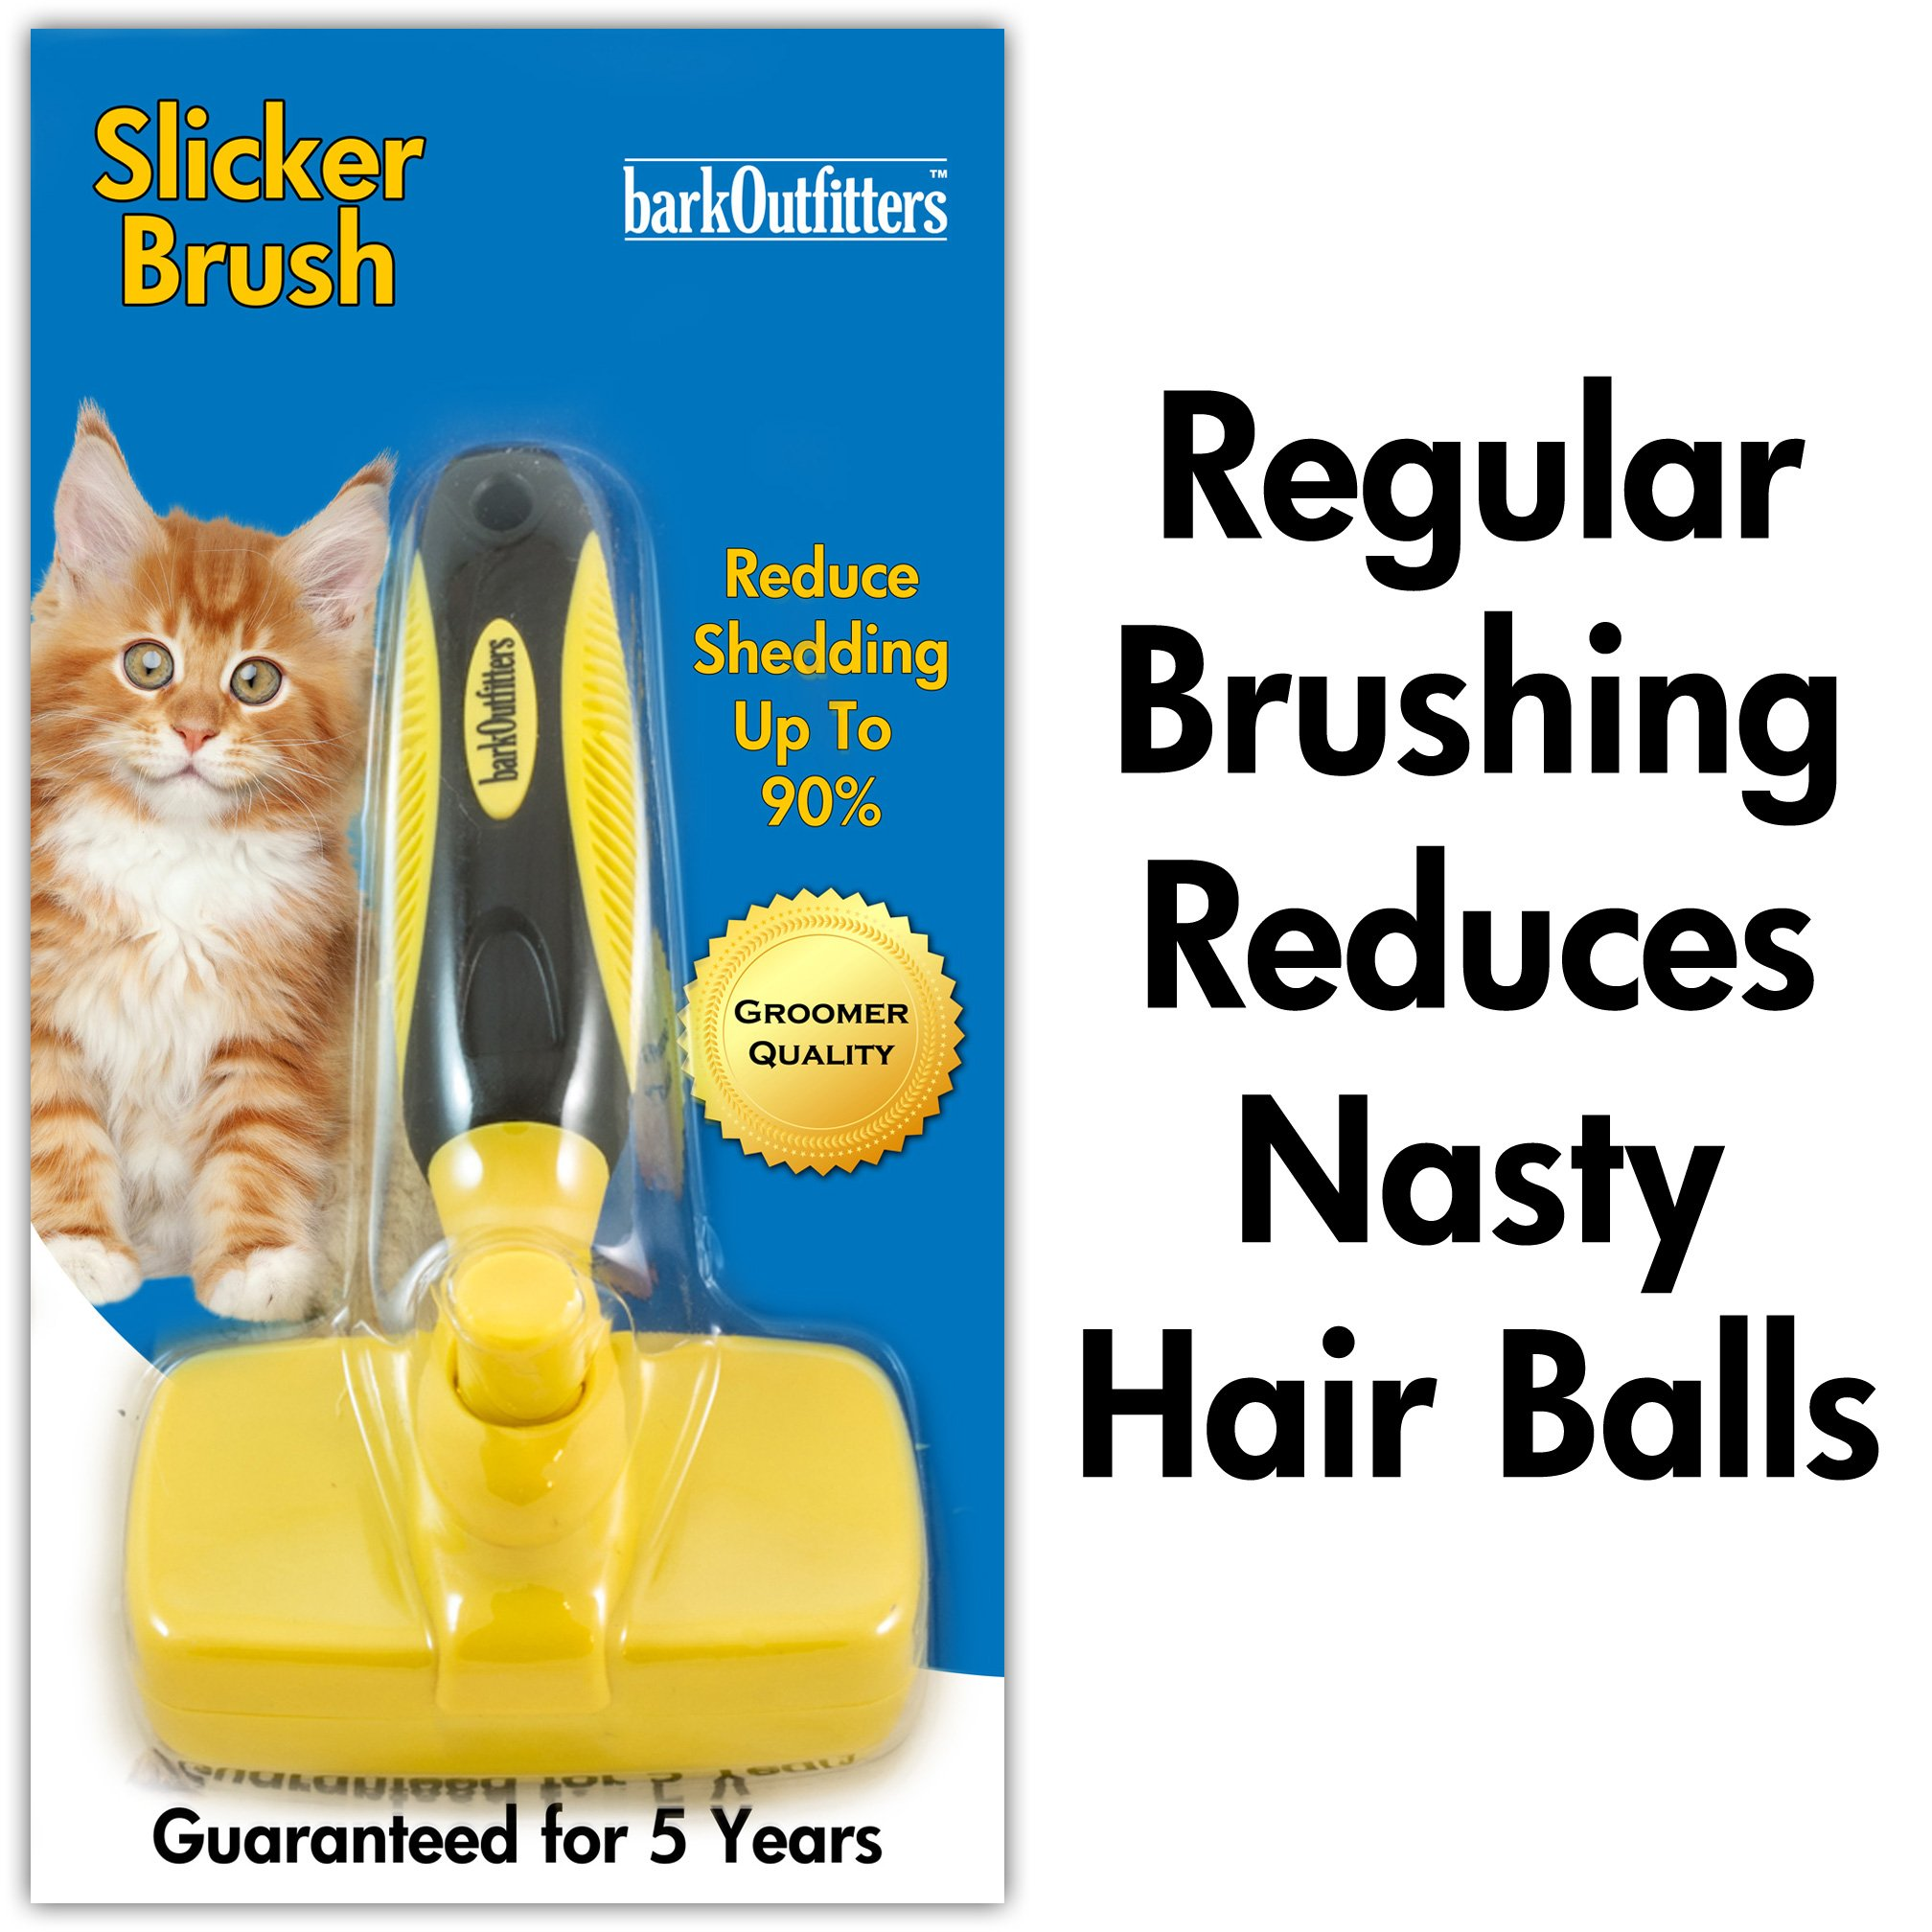 barkOutfitters Cat Slicker Brush, Quick Self-Cleaning Pro Quality Grooming Comb for Cats by barkOutfitters (Image #5)